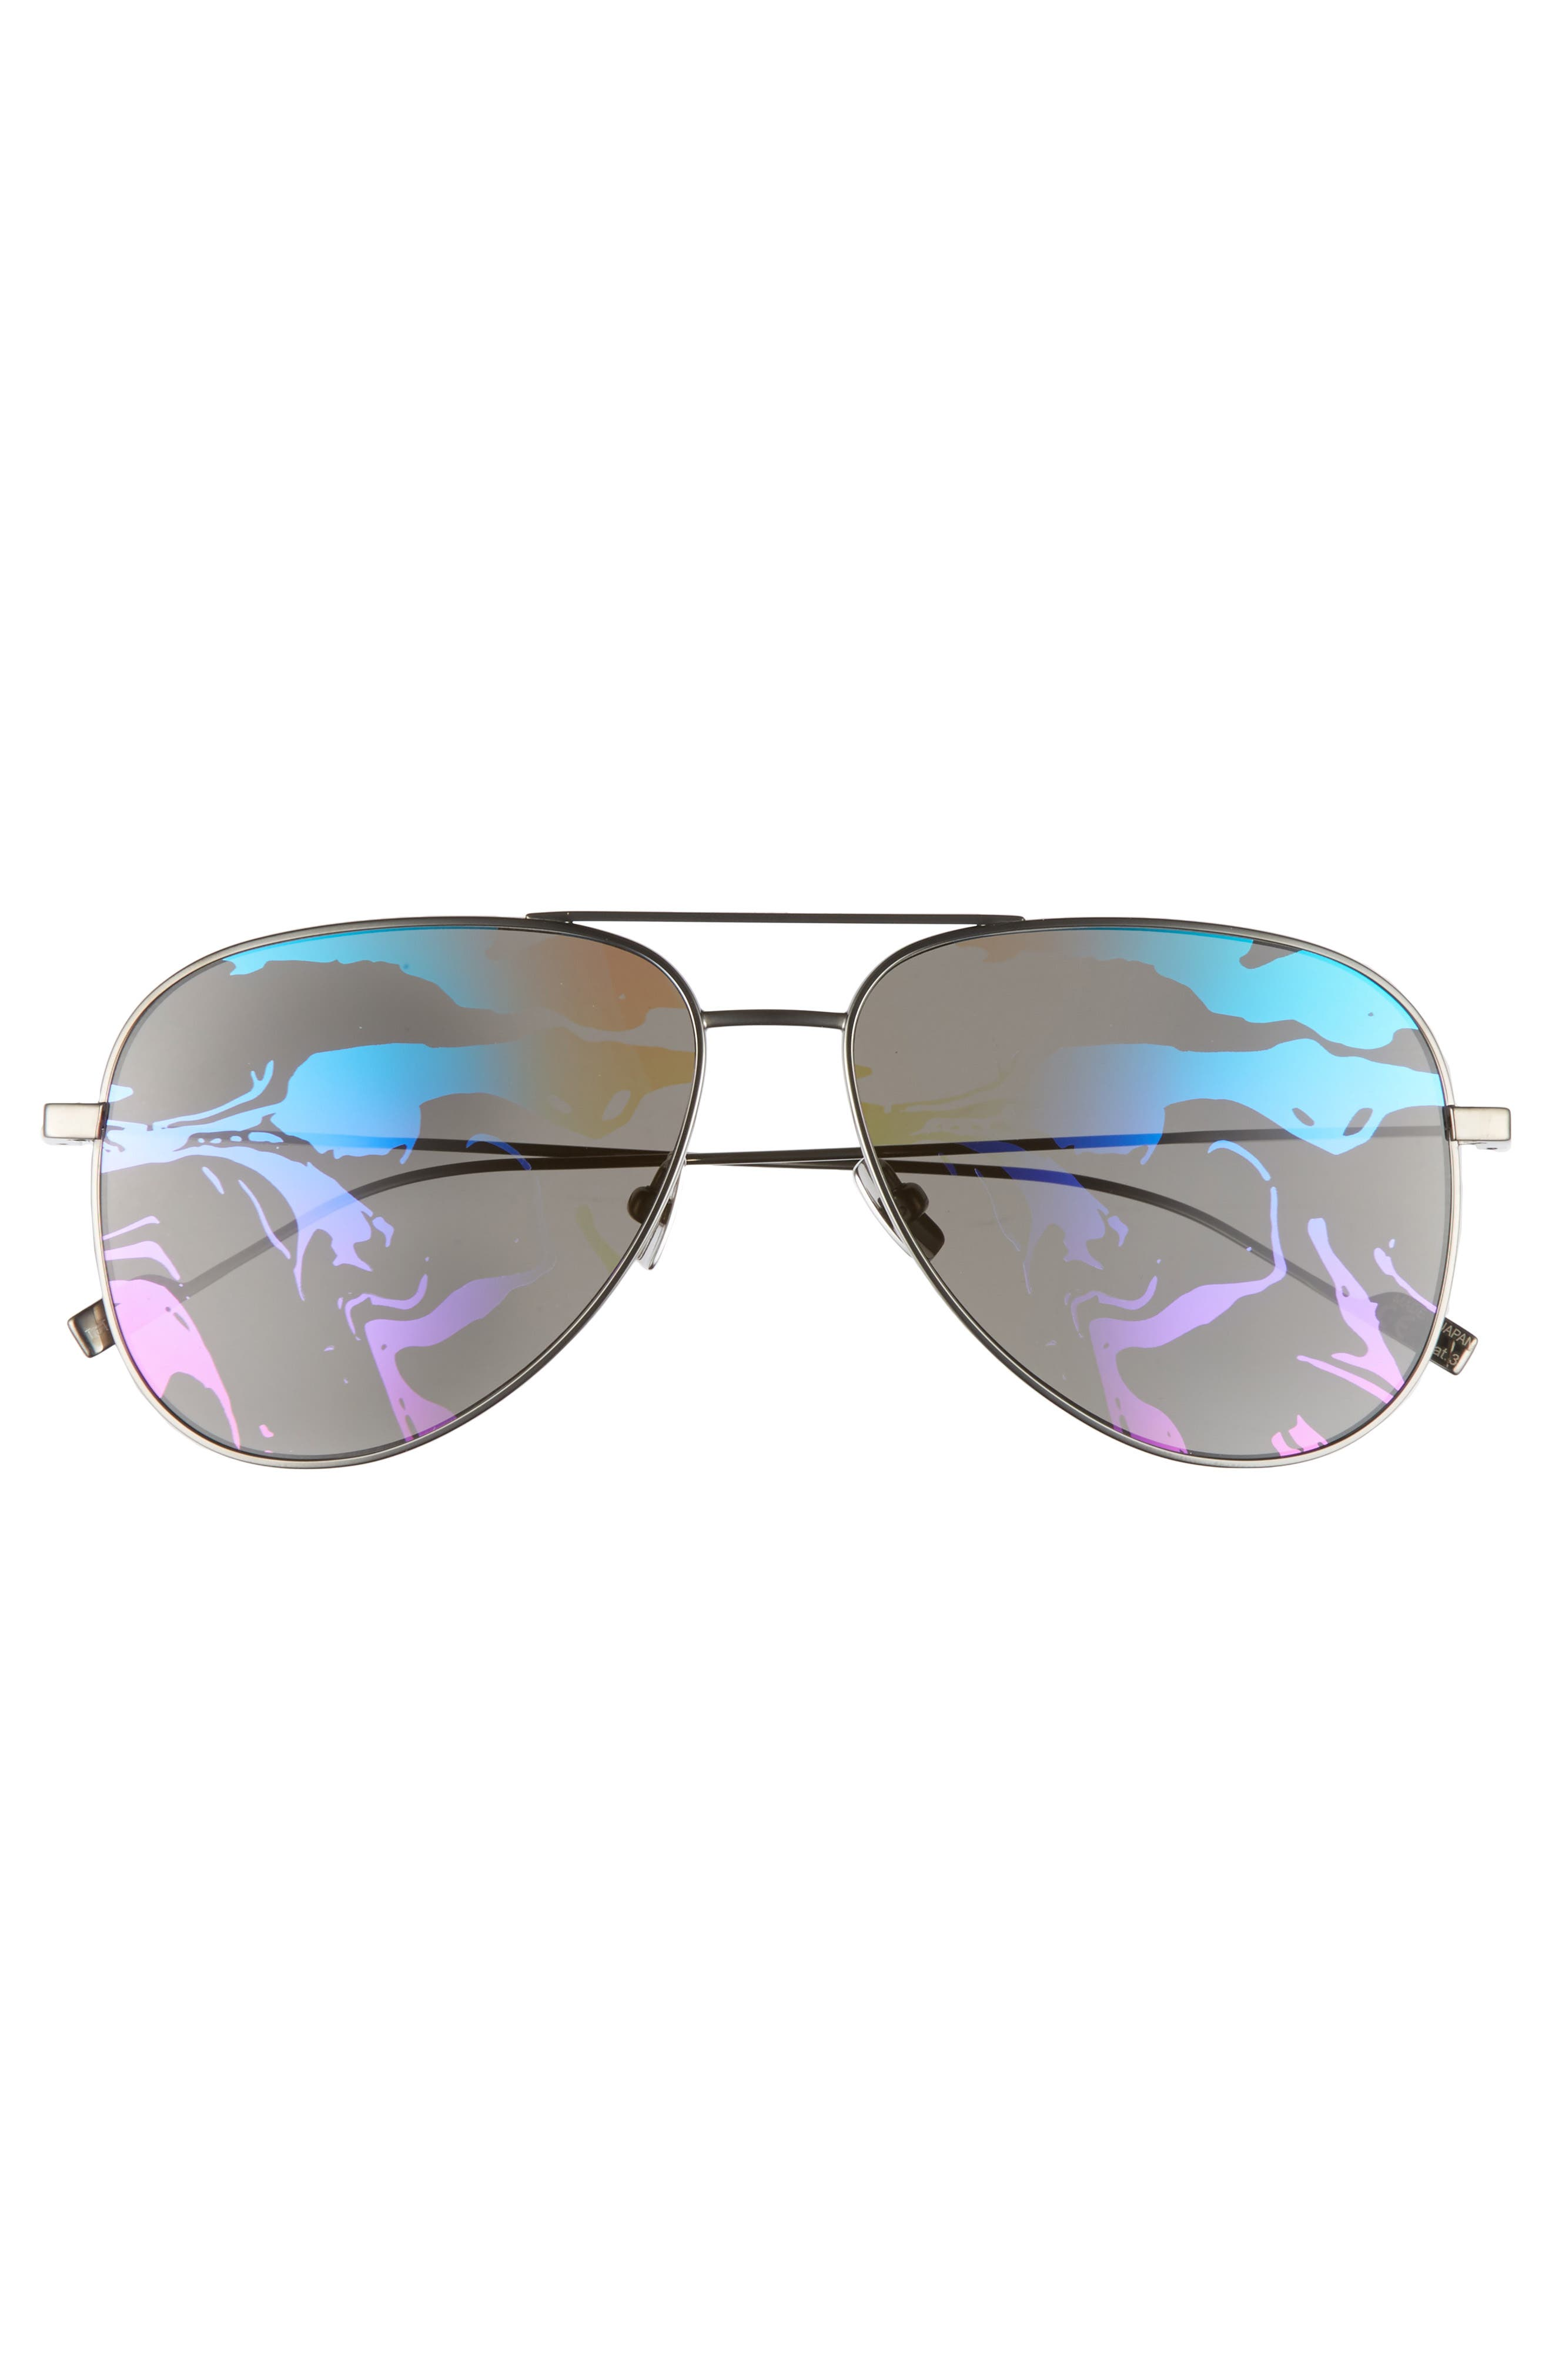 SL193 59mm Aviator Sunglasses,                             Alternate thumbnail 6, color,